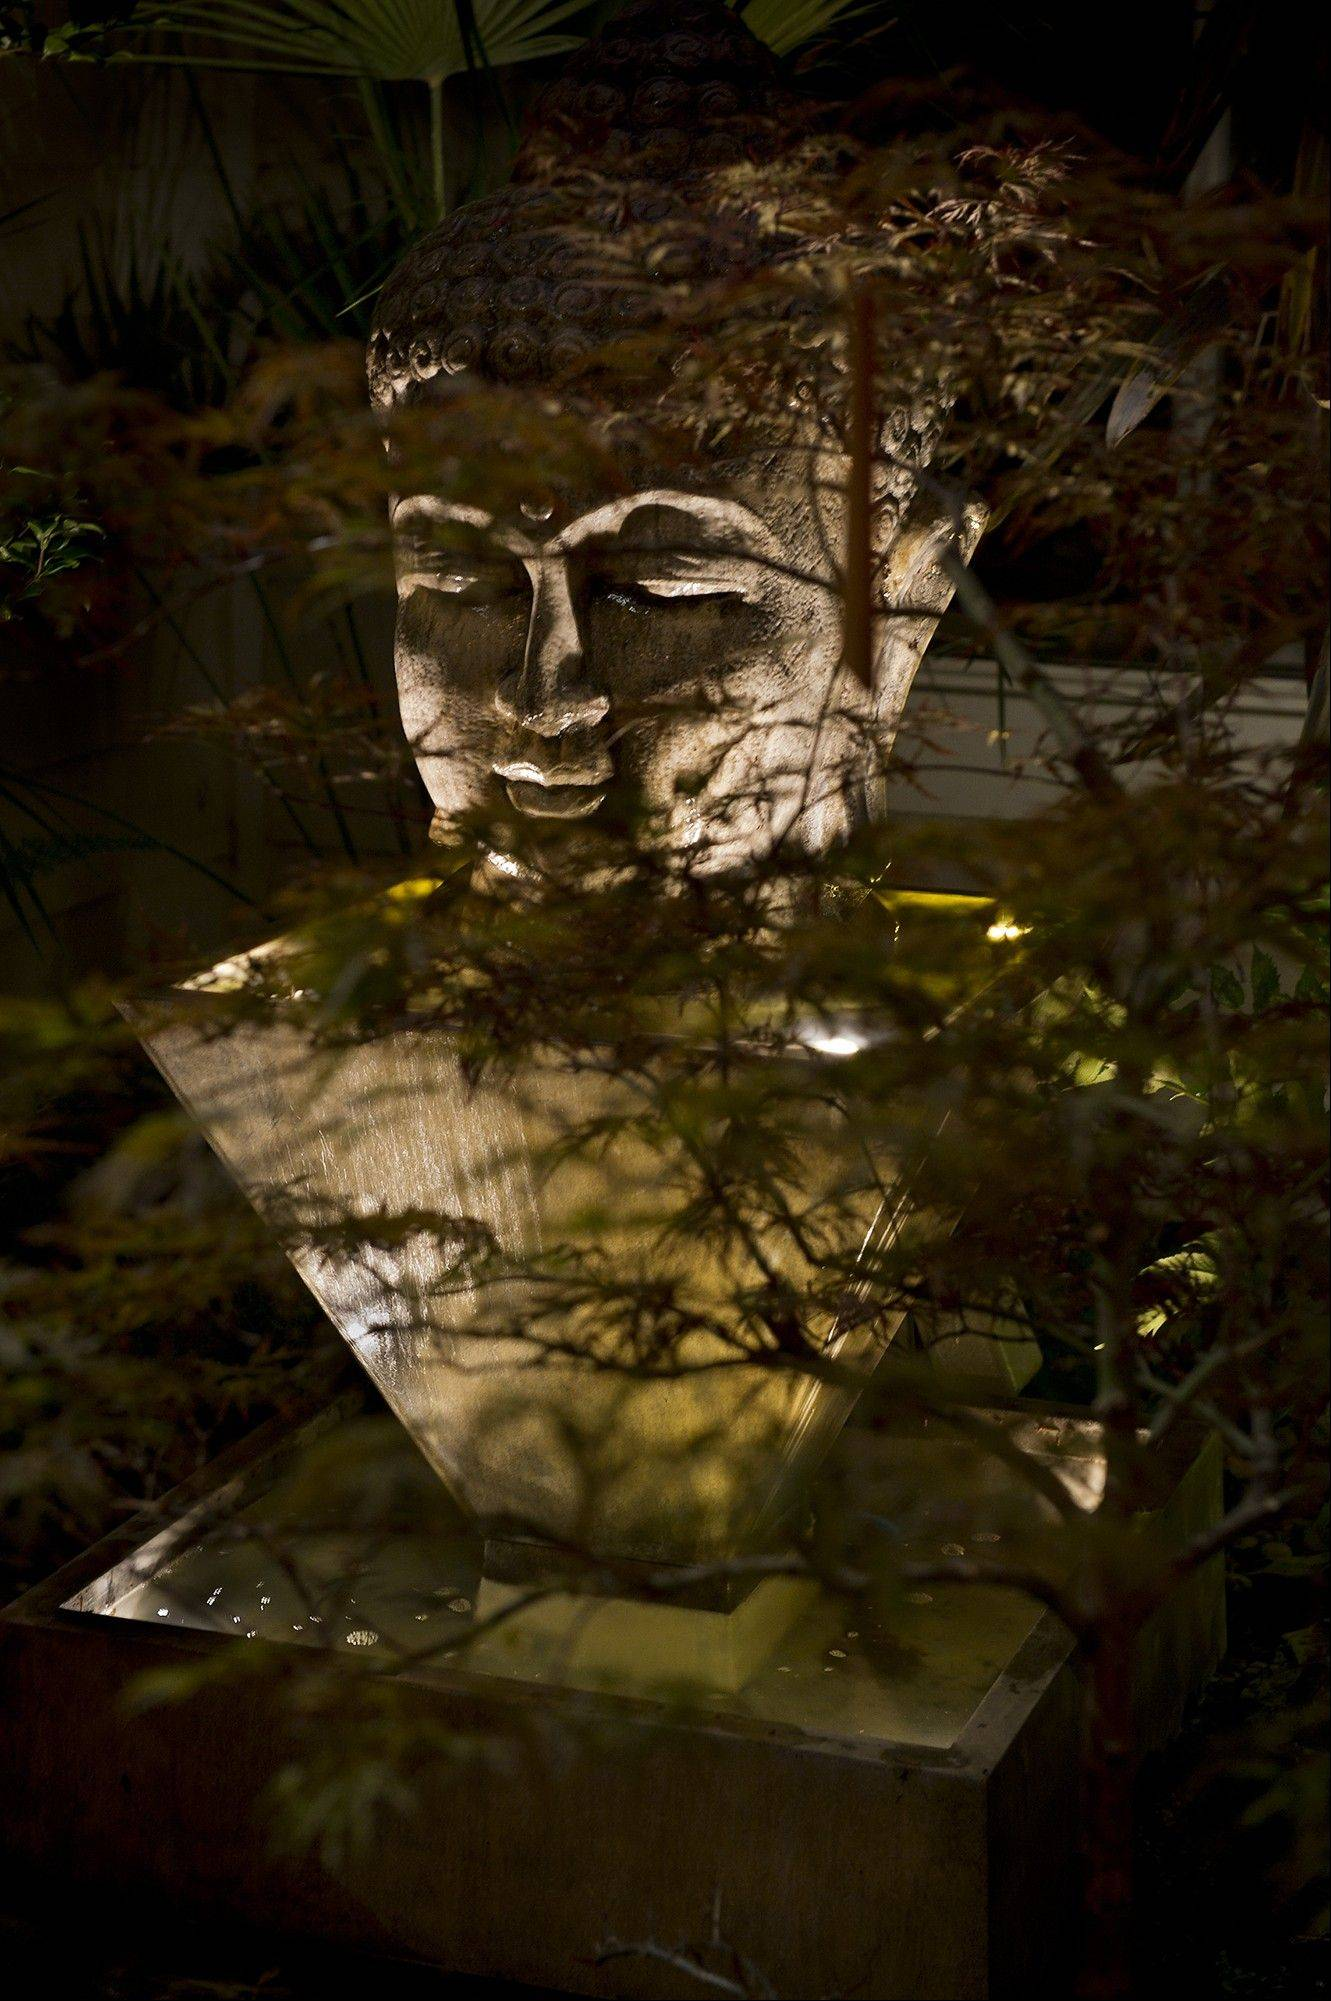 A Buddha fountain bathes in an LED glow in the entryway of Michael Sestak's home.